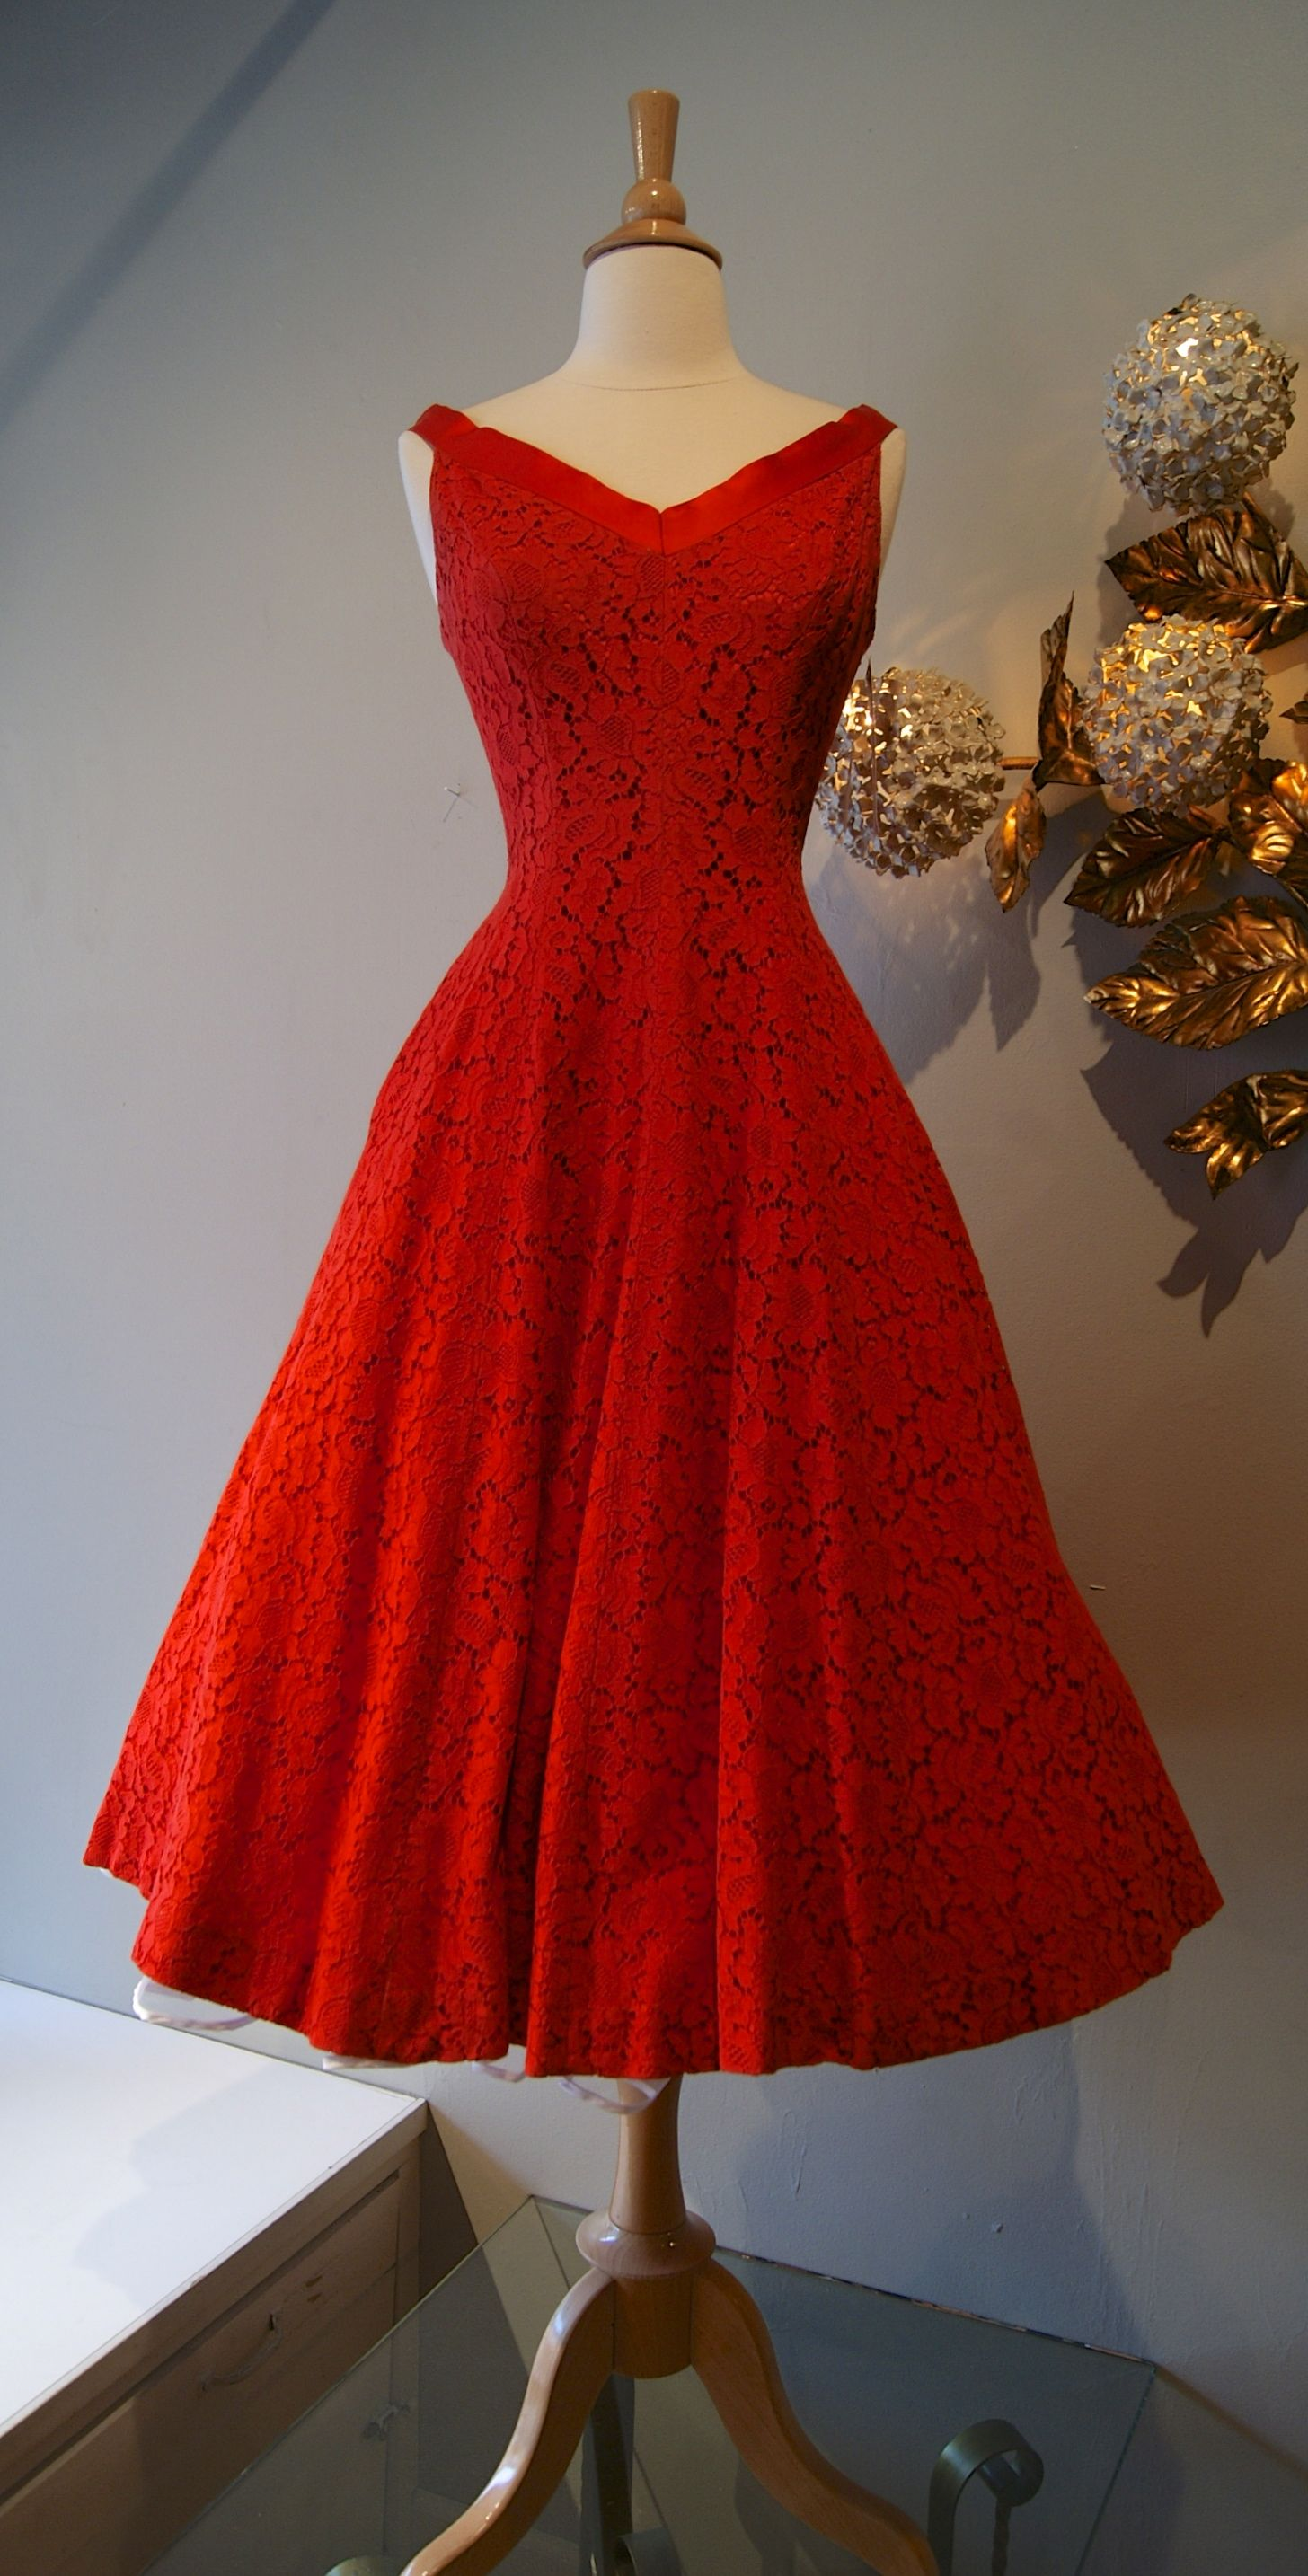 Jonny Herbert 1950's I love this dress! I want it to have it ...